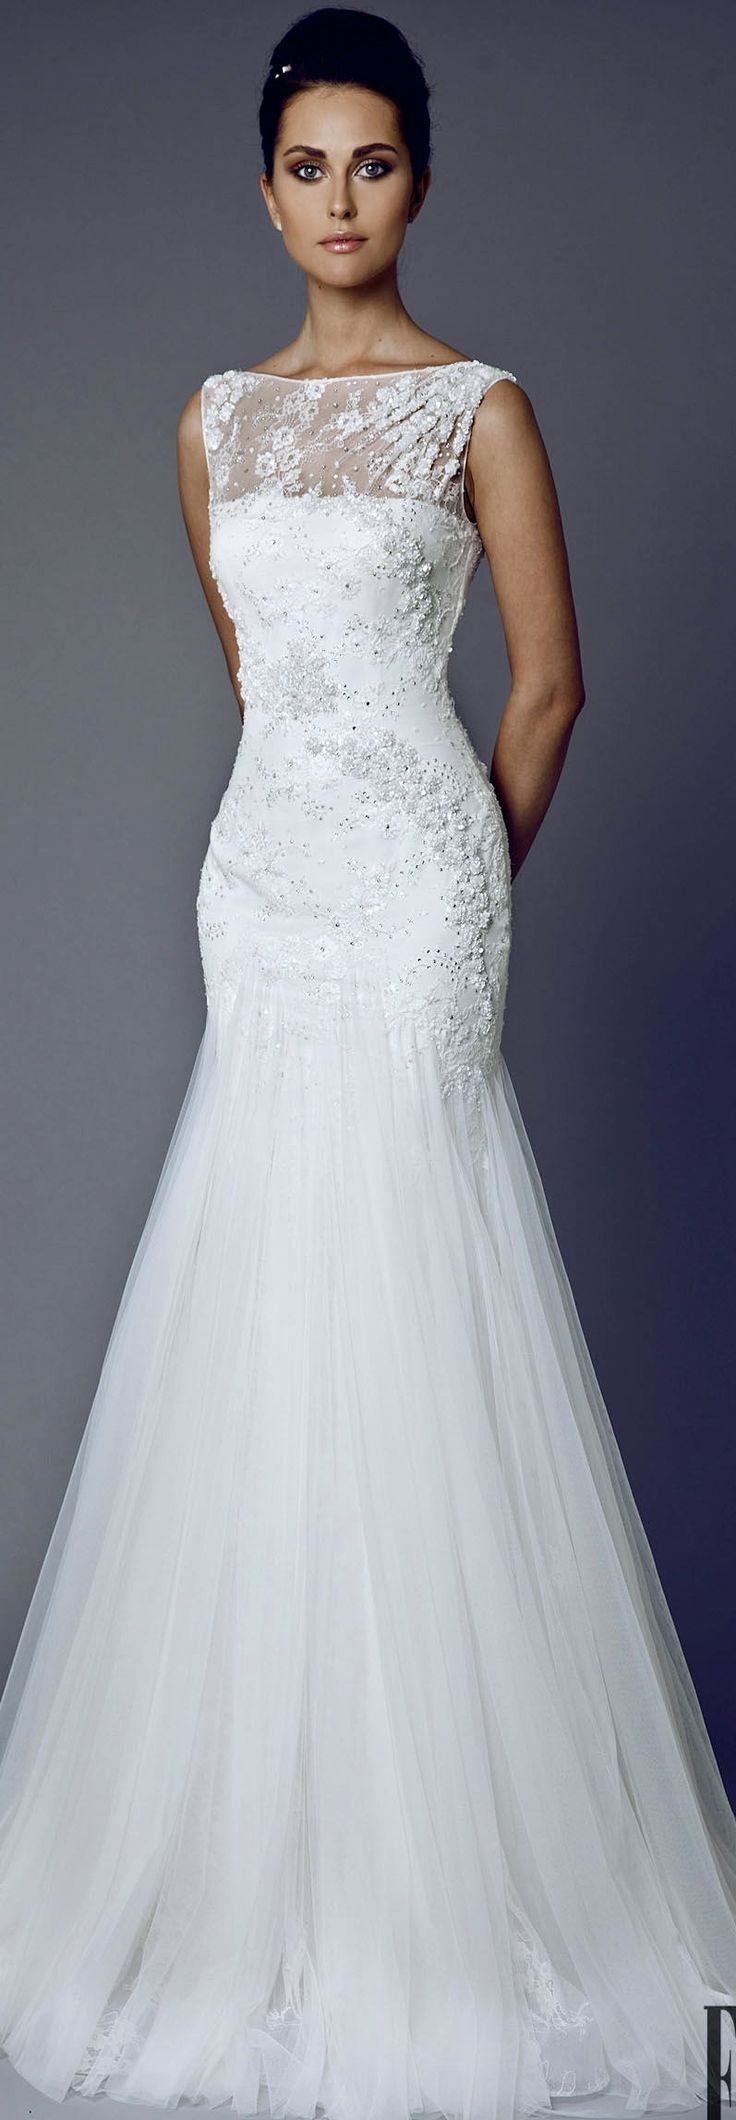 Tony Ward Bridal Dress